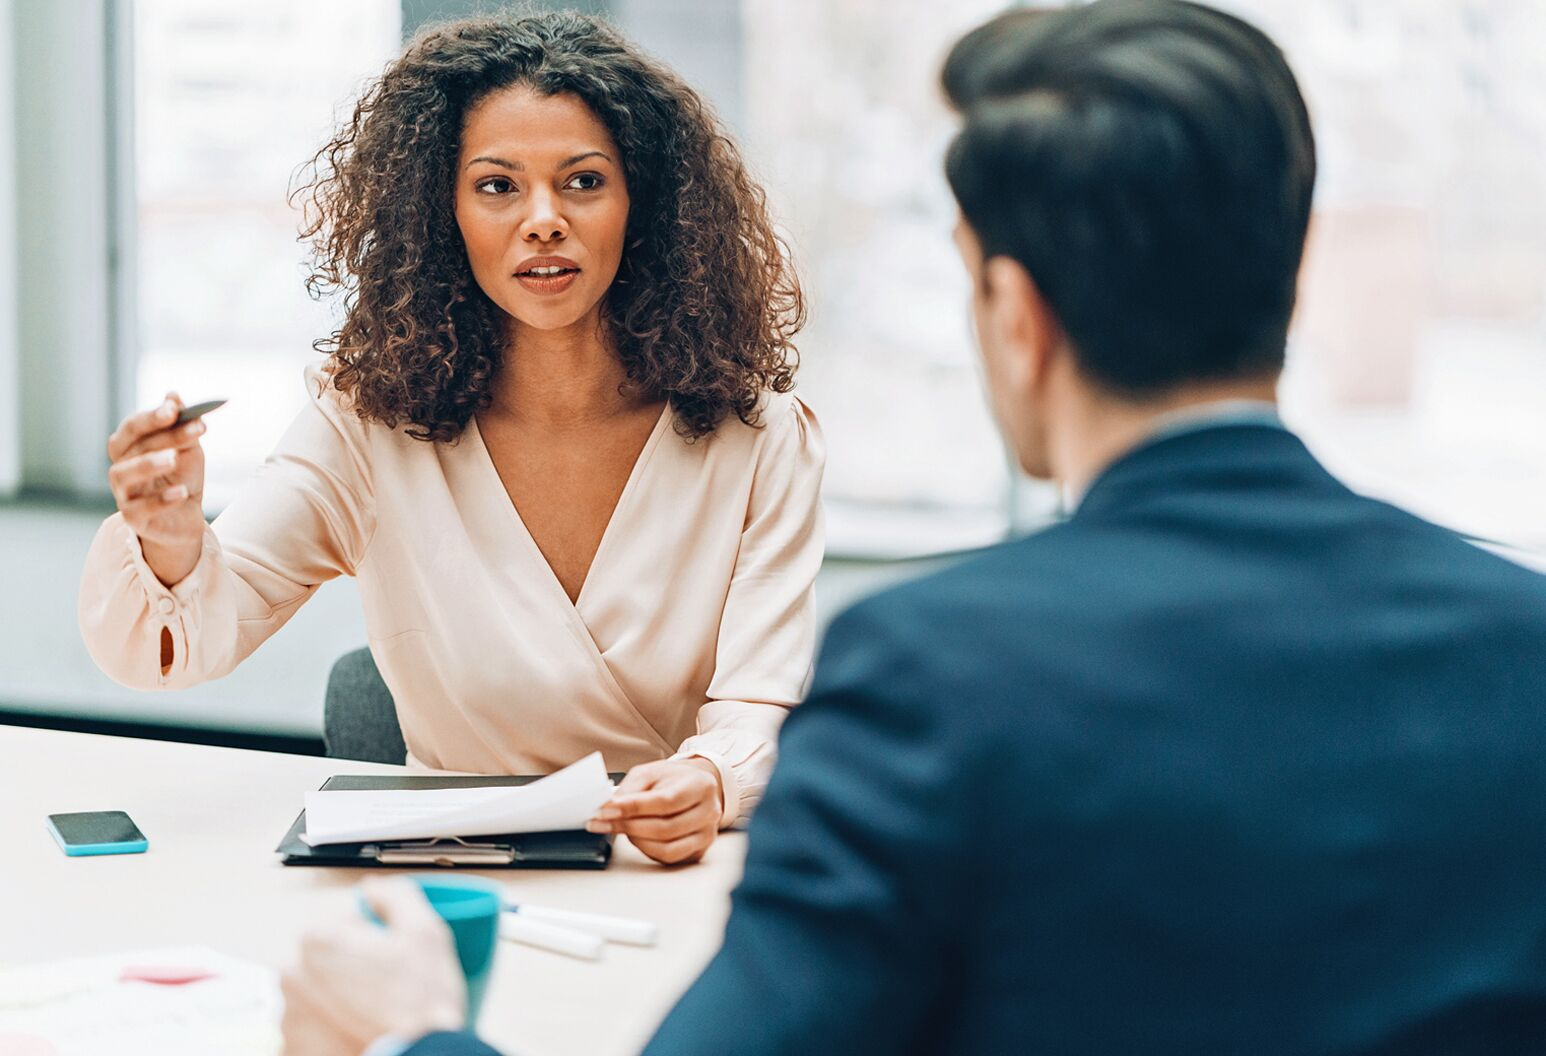 A black woman meets with a man in a blue suit. Northwell President and CEO Michael Dowling offers six tips for leaders to stay relentlessly and unapologetically focused.